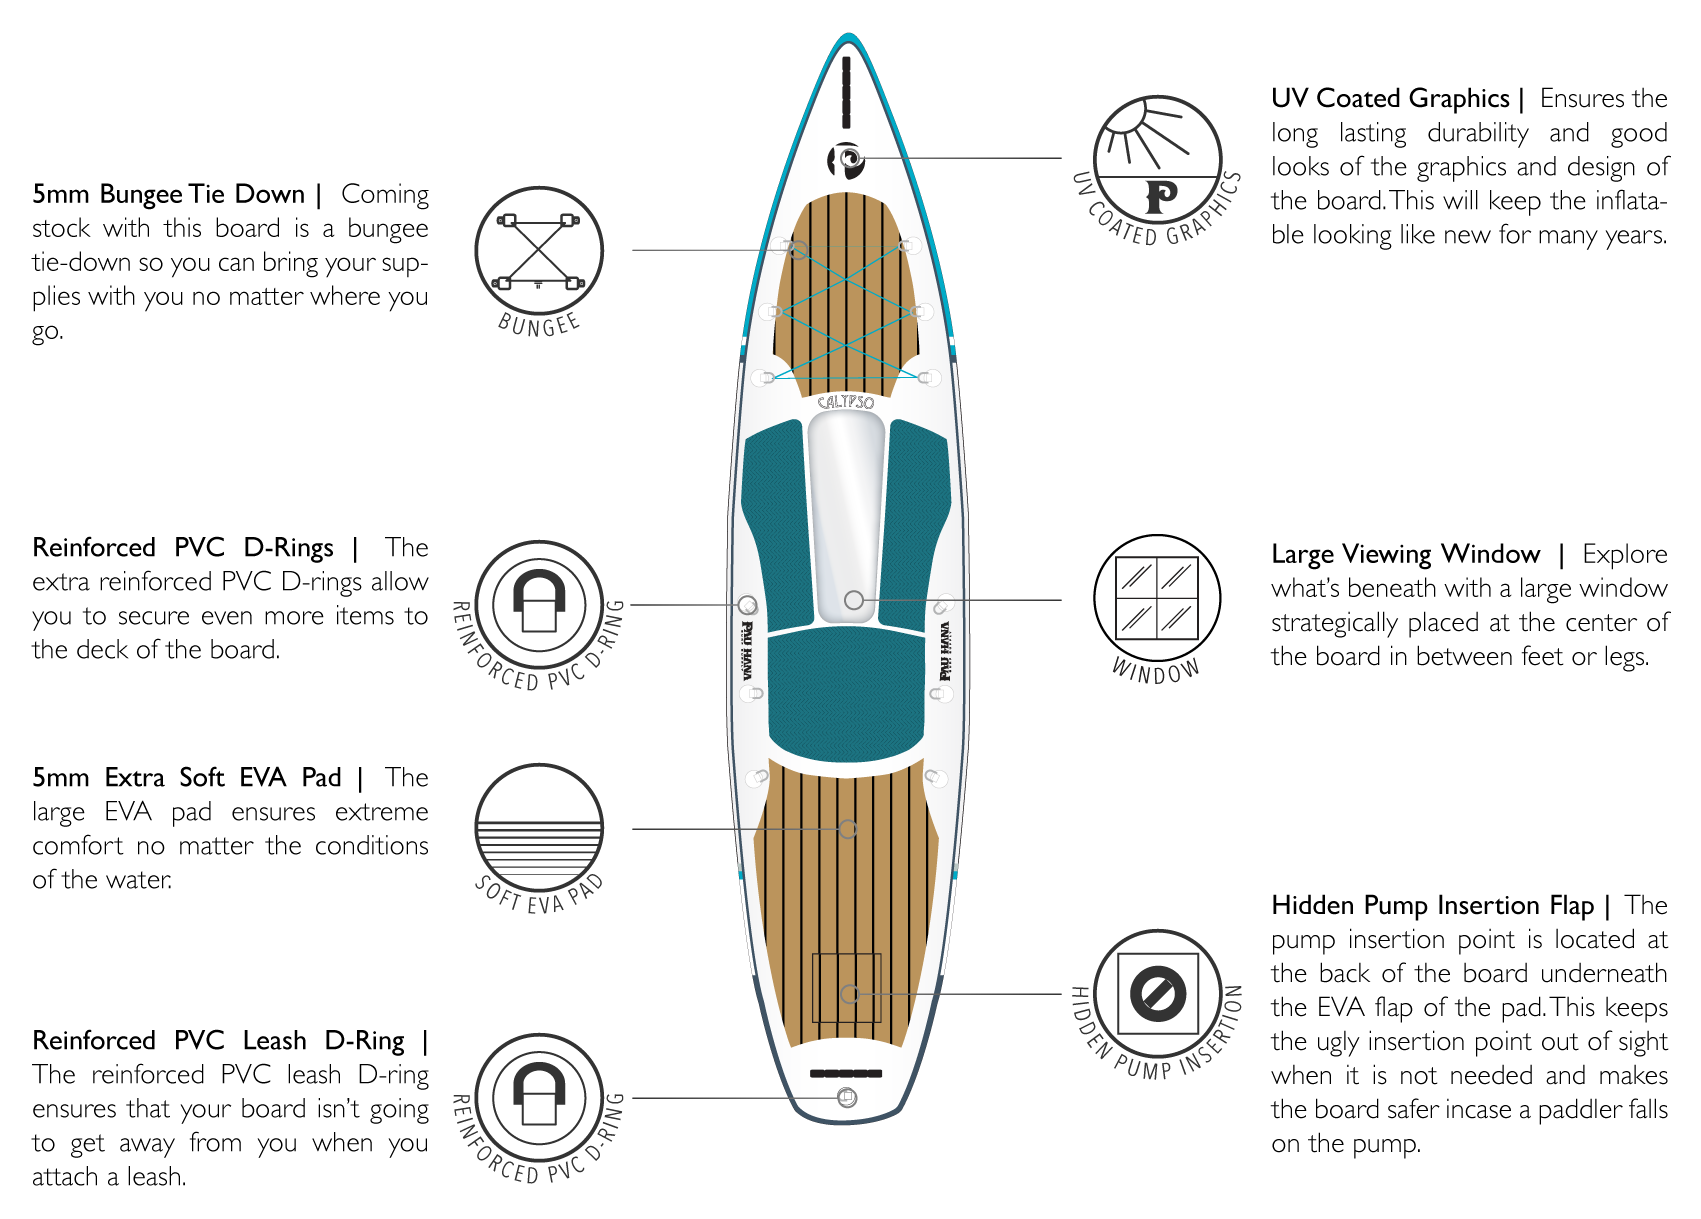 Calypso inflatable SUP features